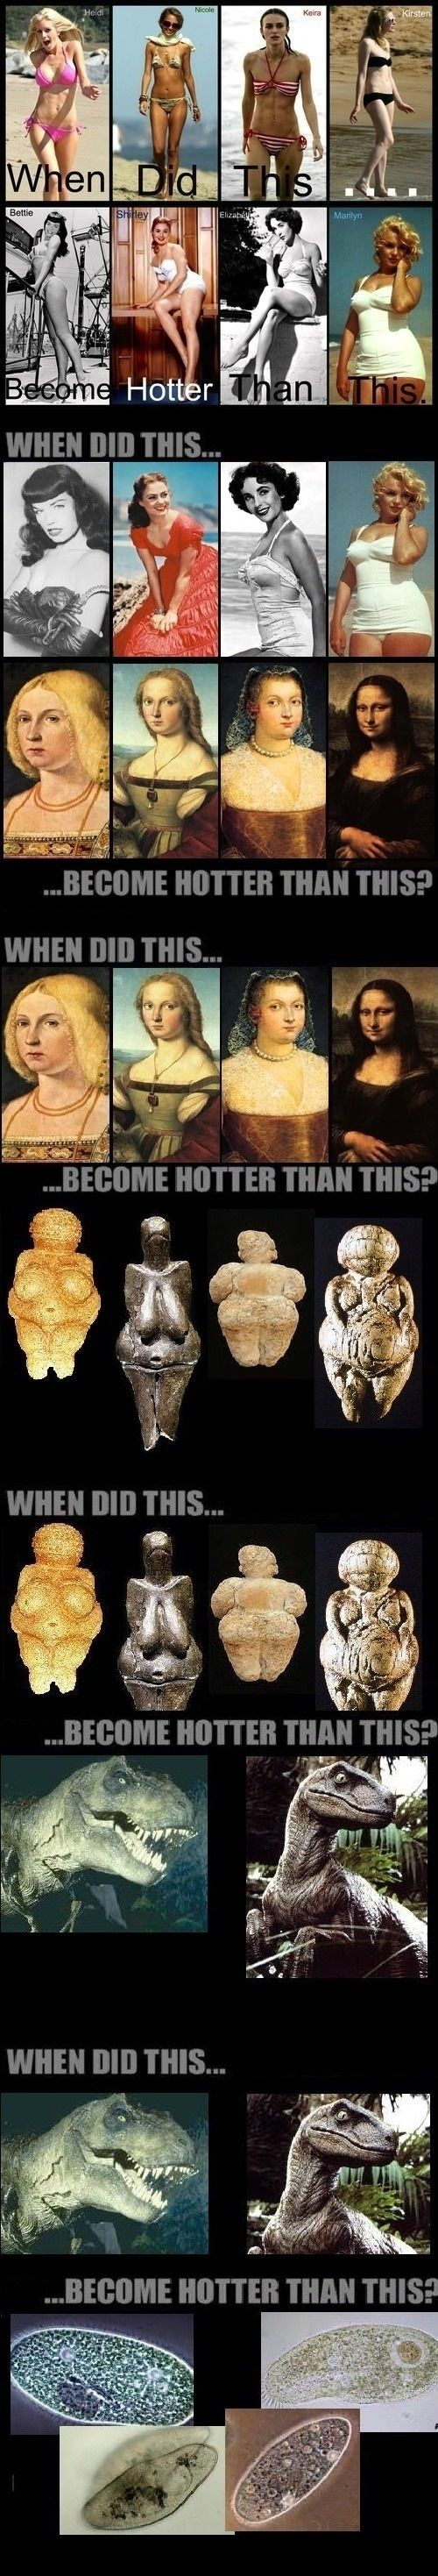 When Did THIS Become Hotter Than THIS HAHAHA